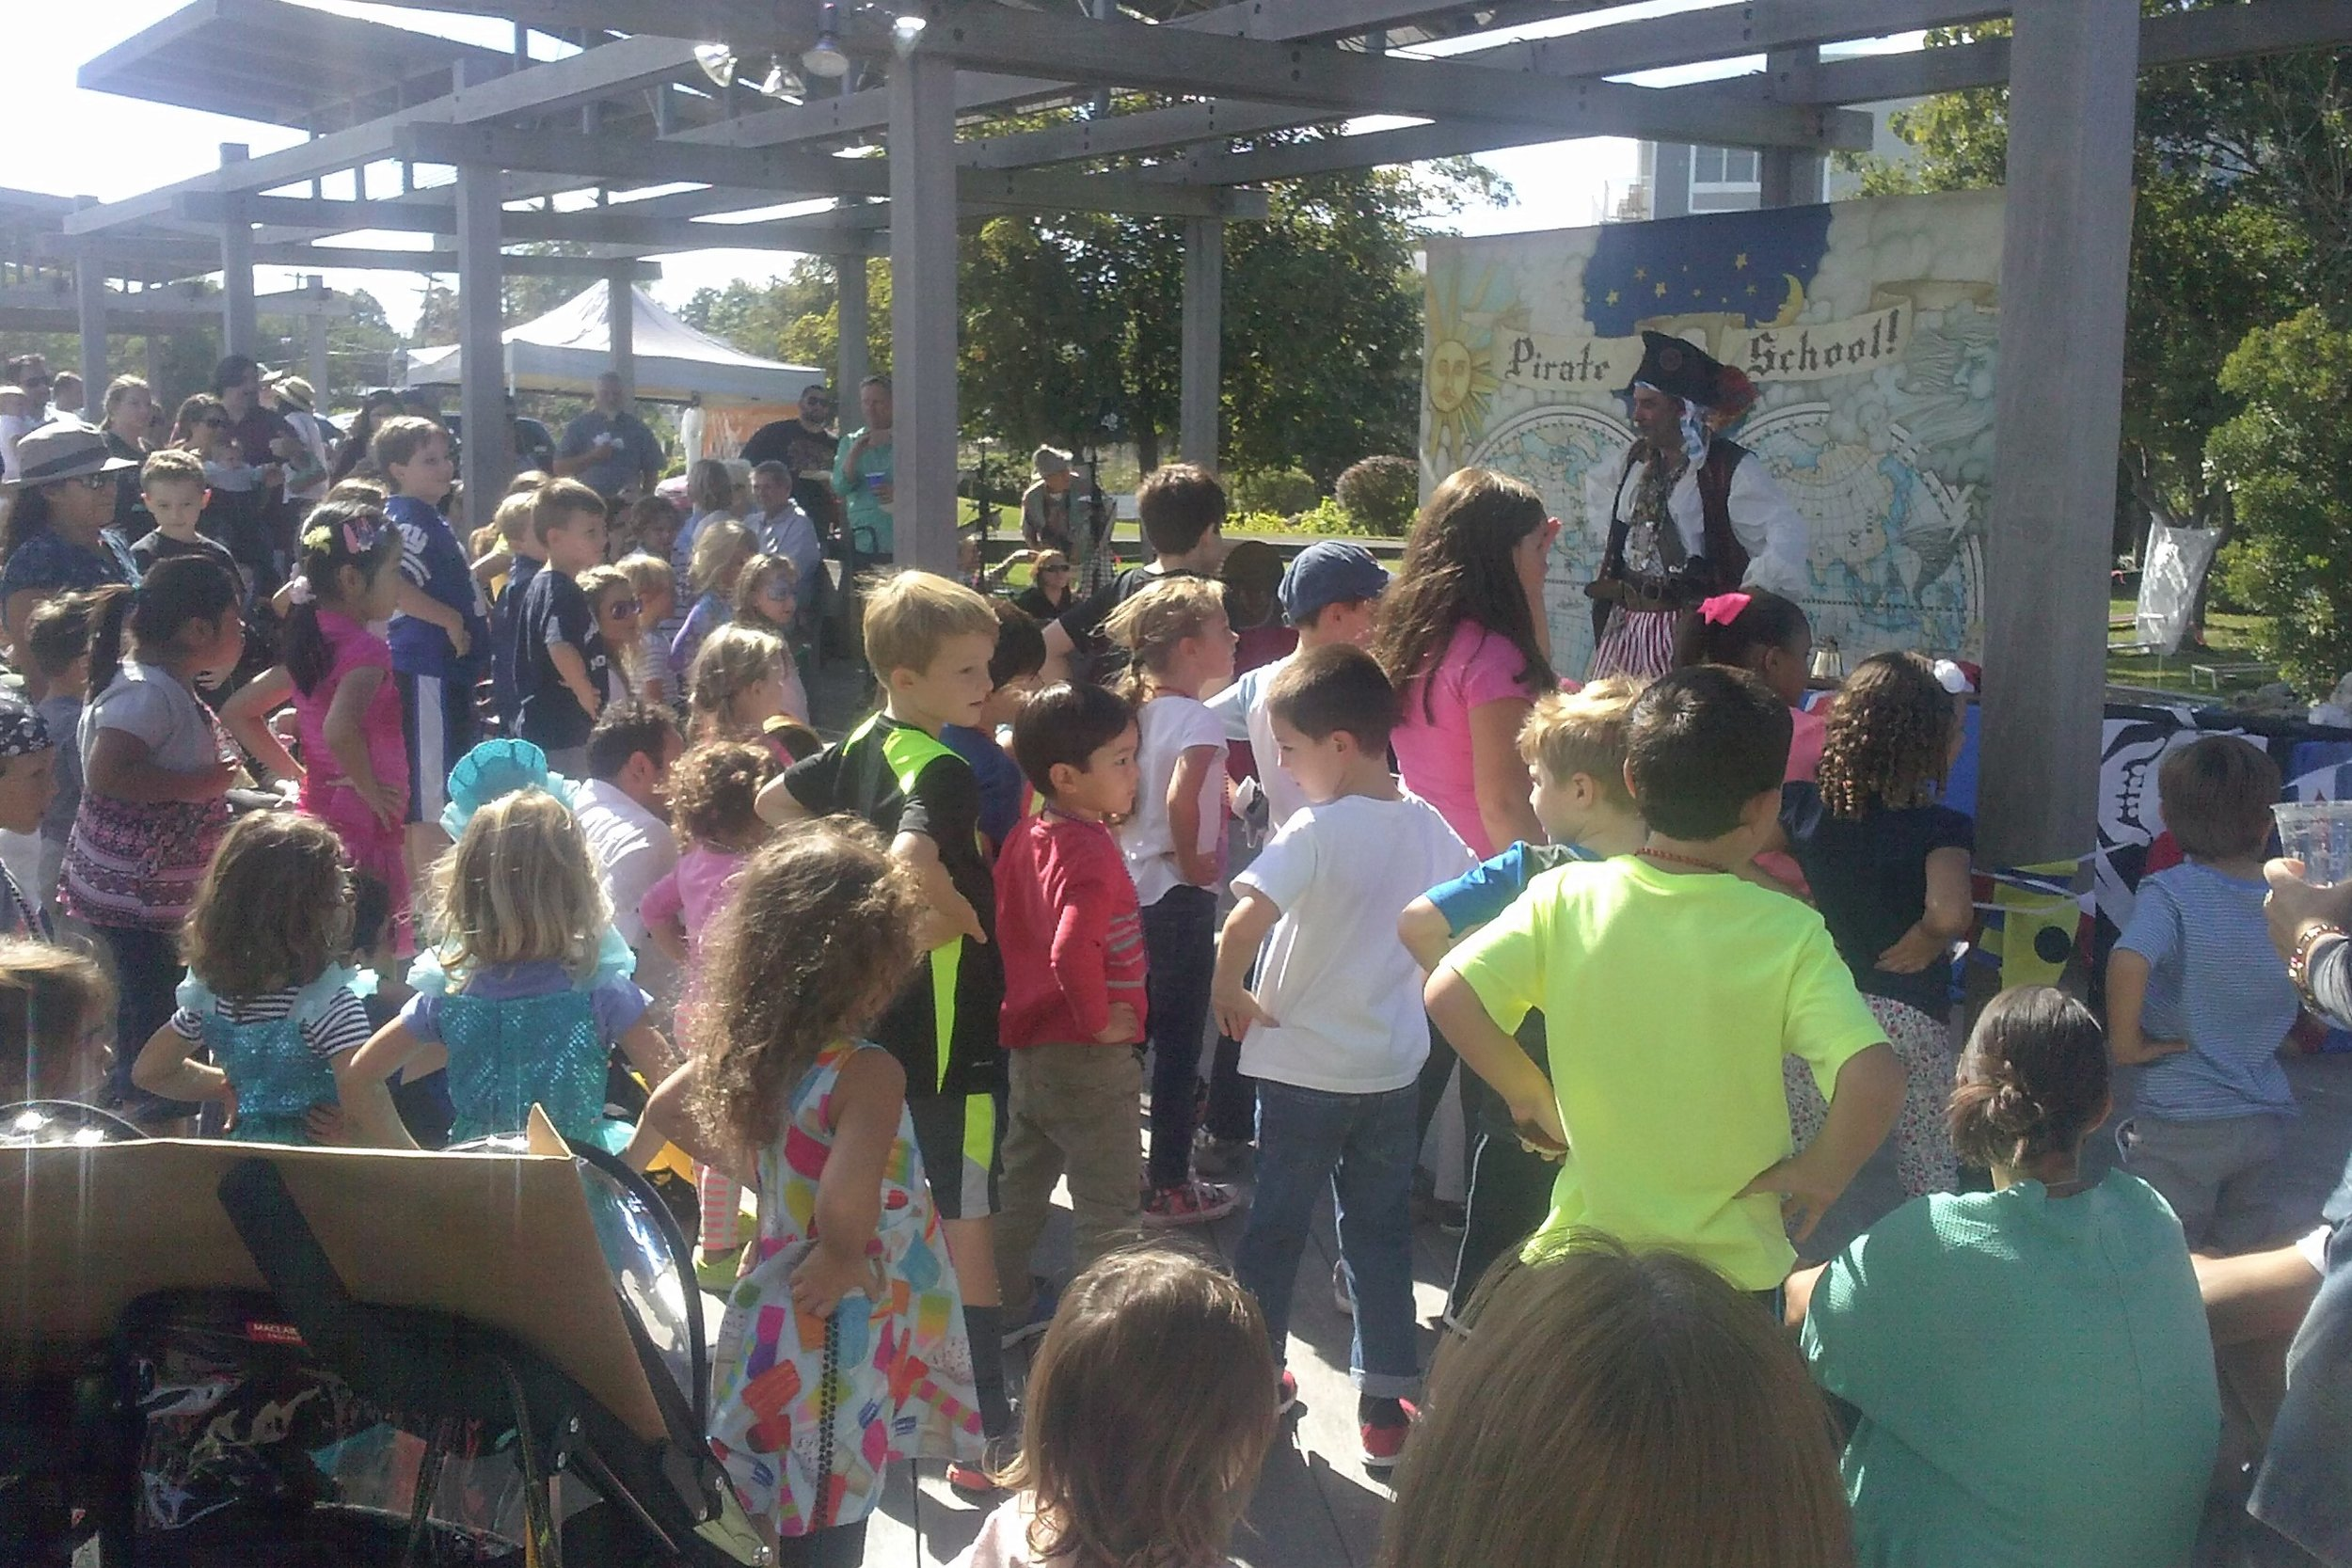 Pirate School Feet wide on the deck Hands on your hips Arrrr like a pirate Gport MarFest 2016.jpg